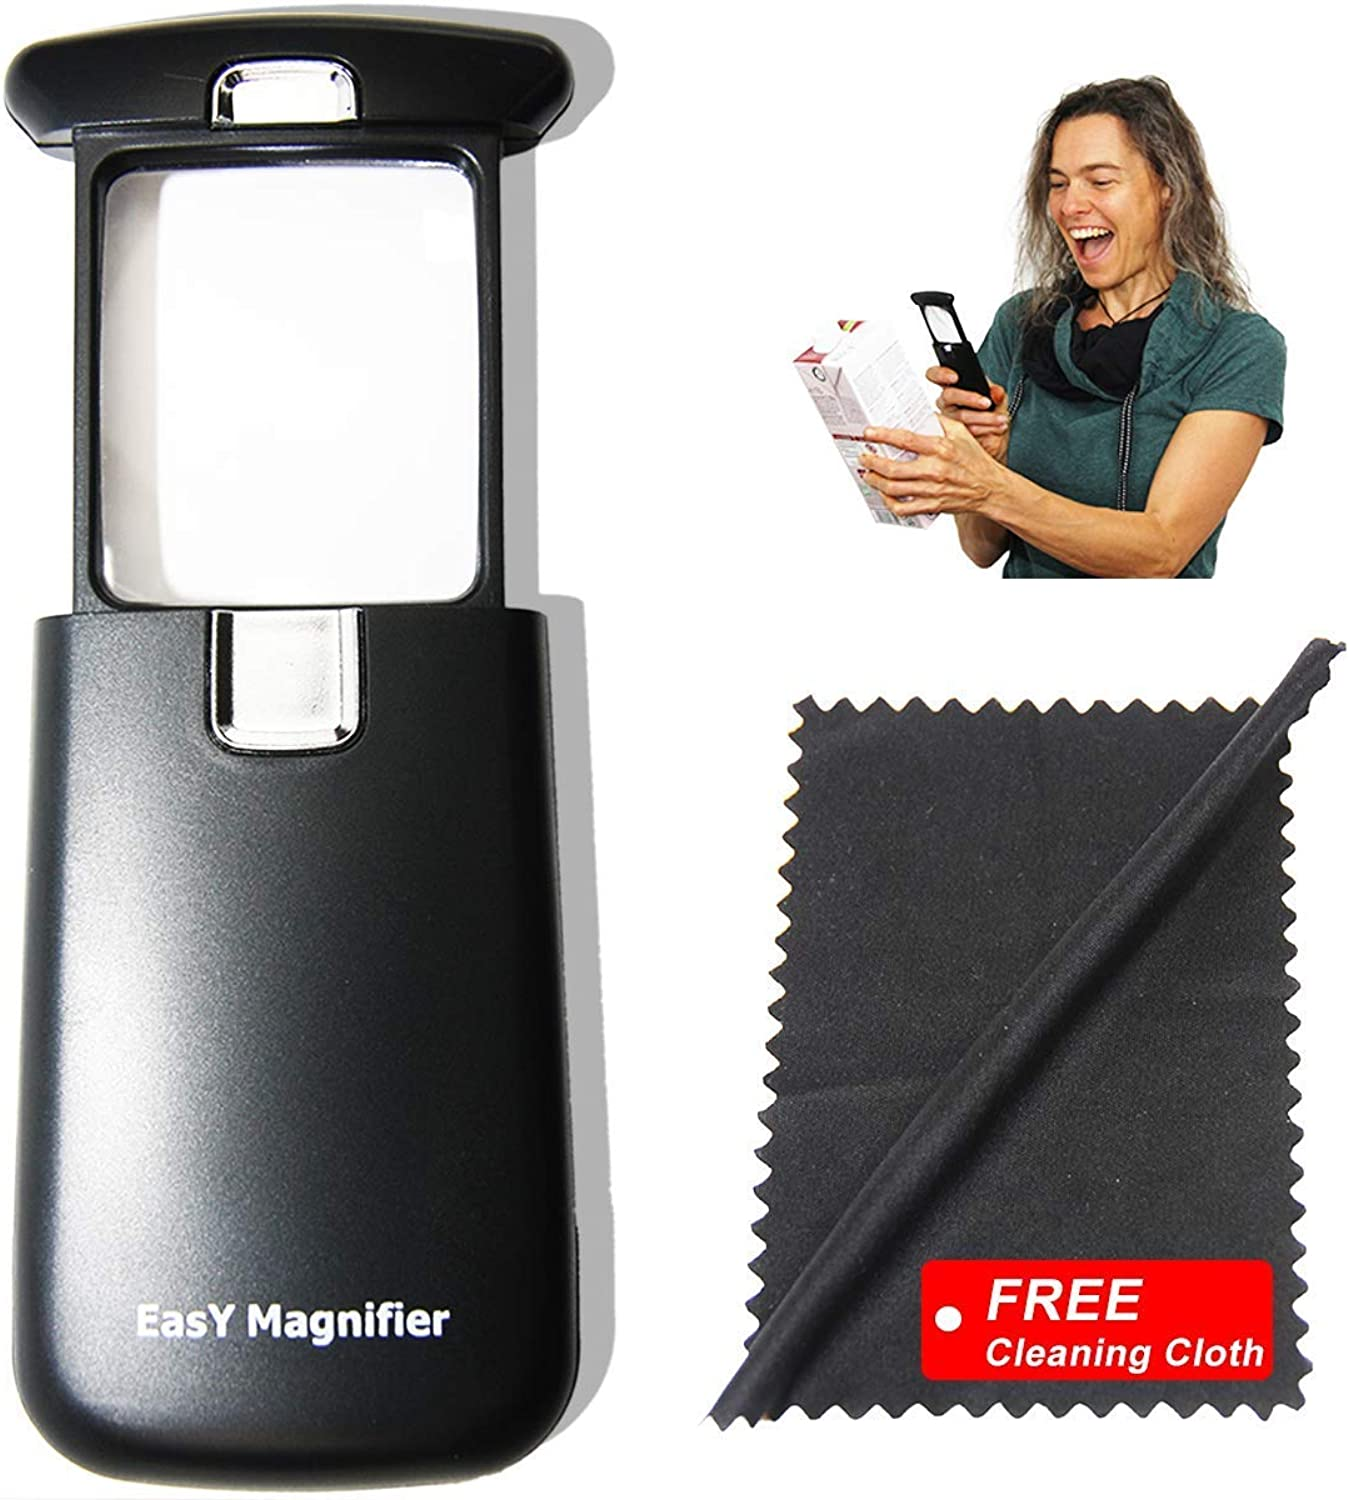 3x magnifying glass with transparent LED light; Beste small magnifying glass with predected quadrilateral acrylic lens; illuminated magnifying glass reading newspapers and books on the street; handhel